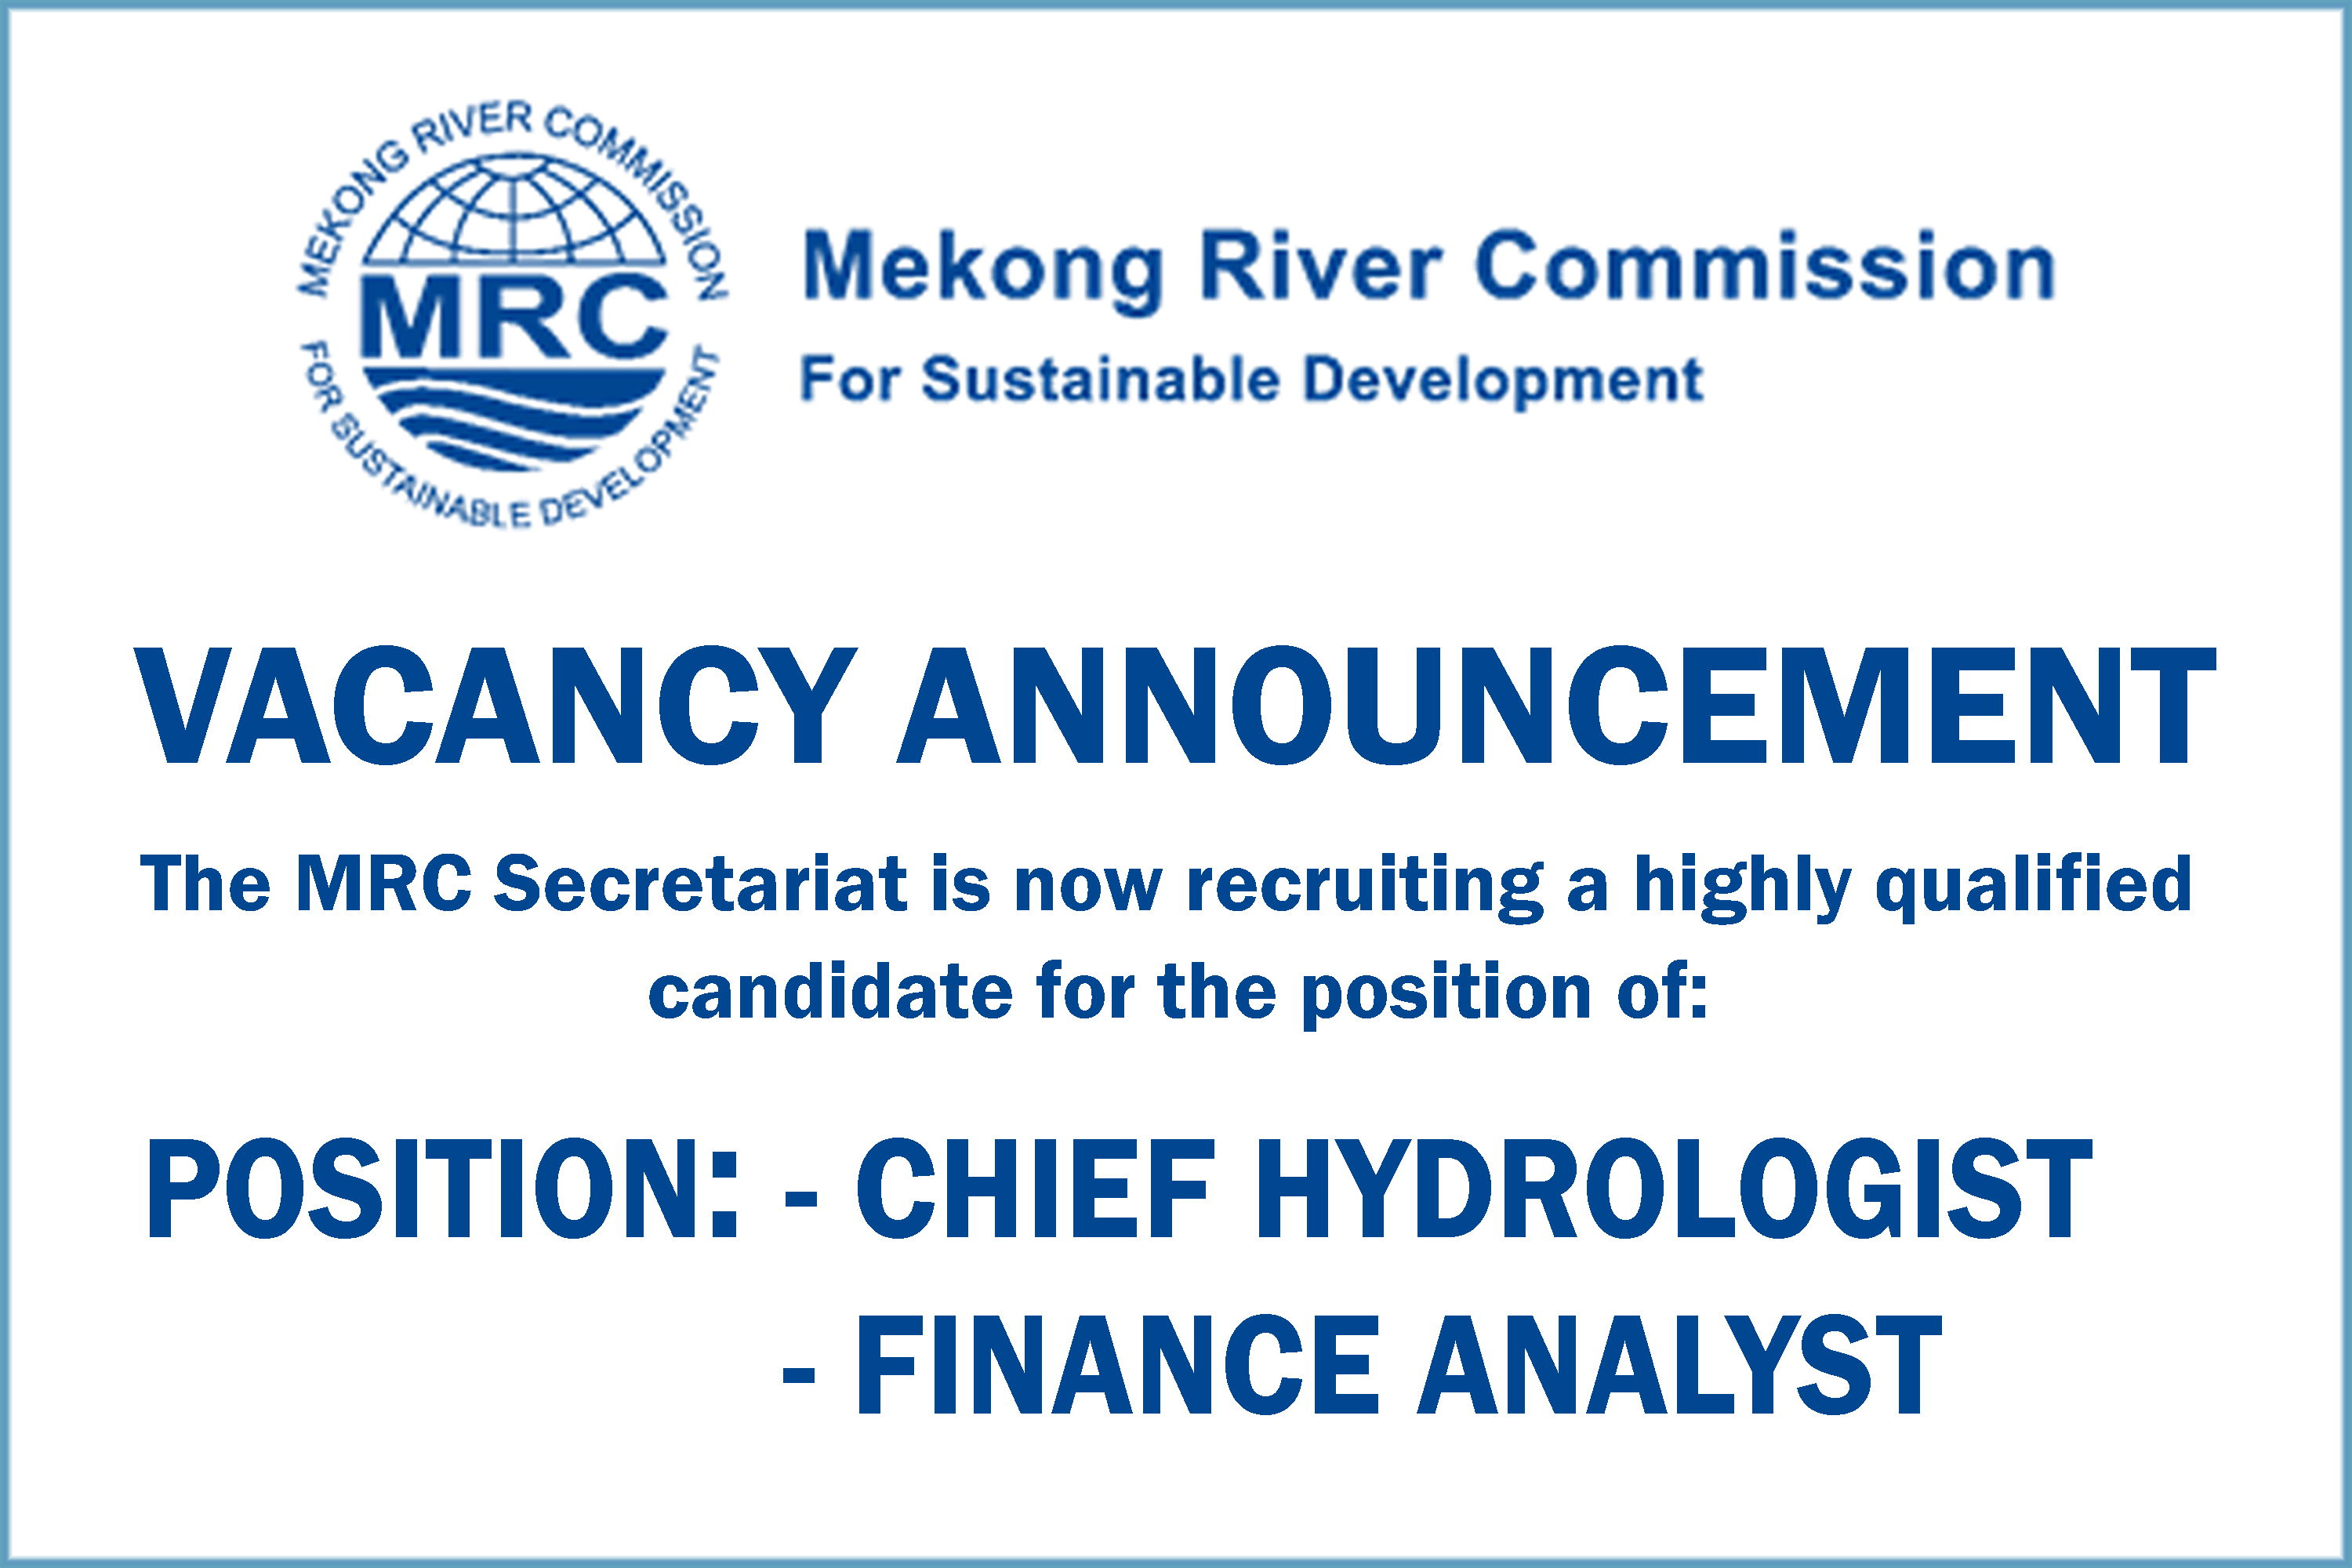 VACANCY ANNOUNCEMENT